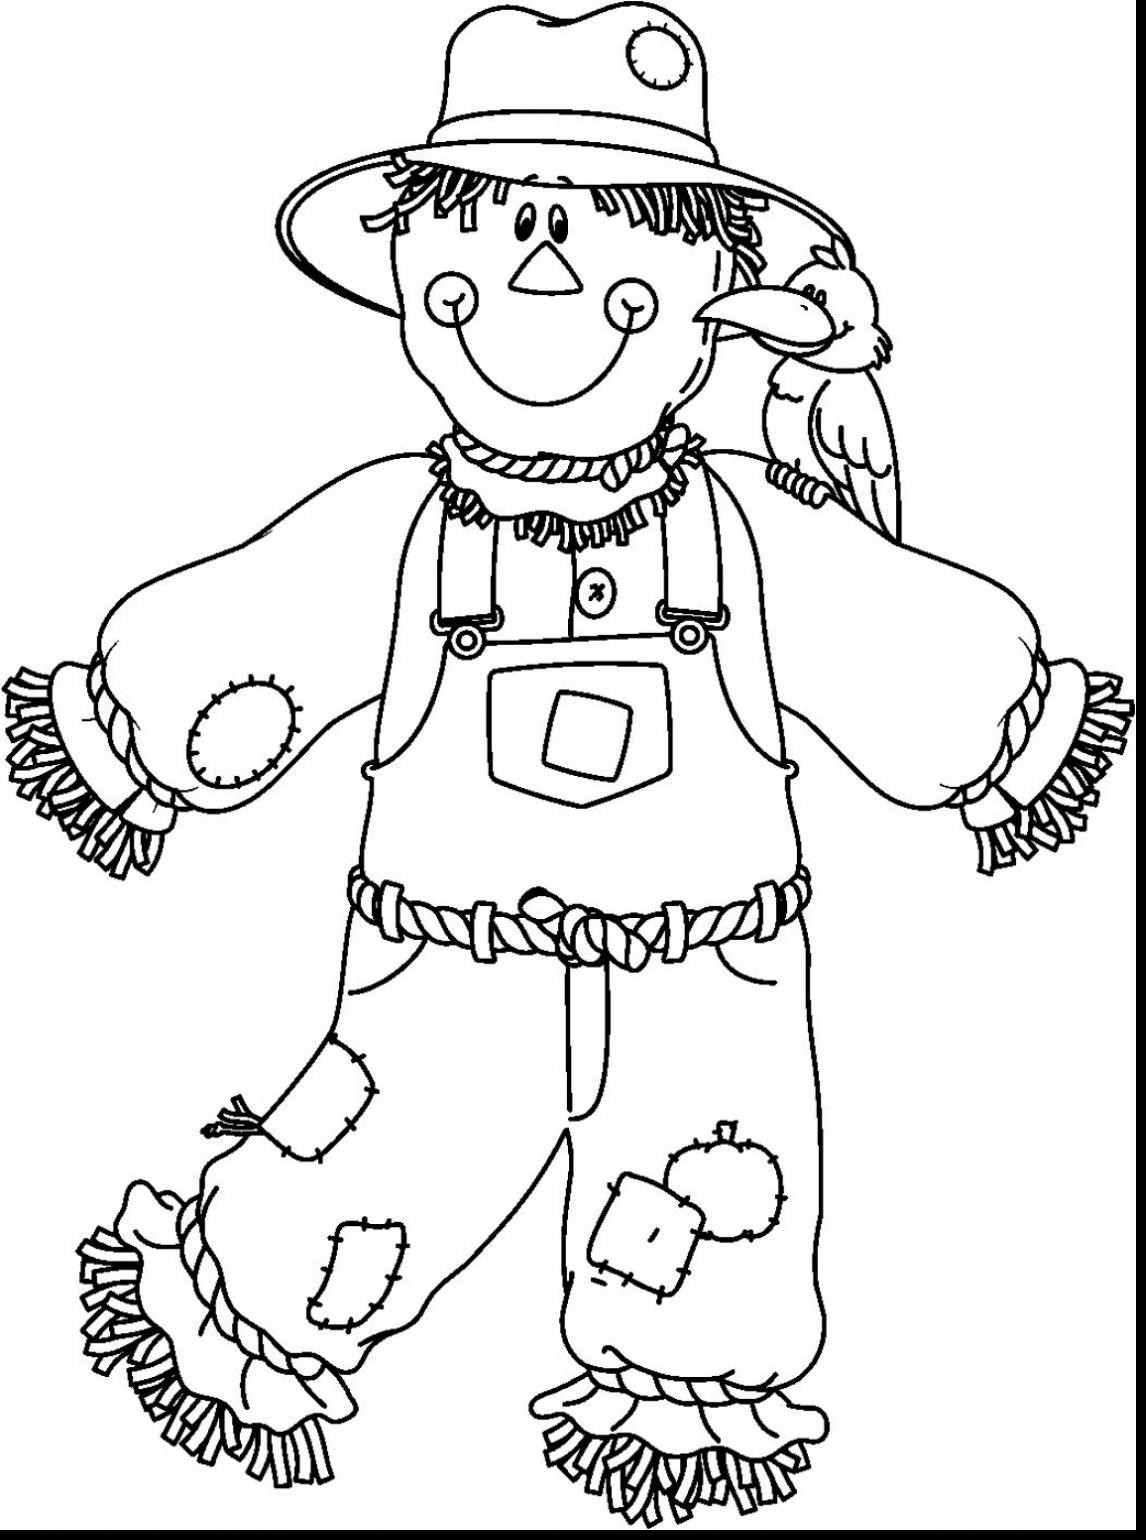 scarecrow coloring pages free printable scarecrow coloring pages at getcolorings scarecrow pages coloring